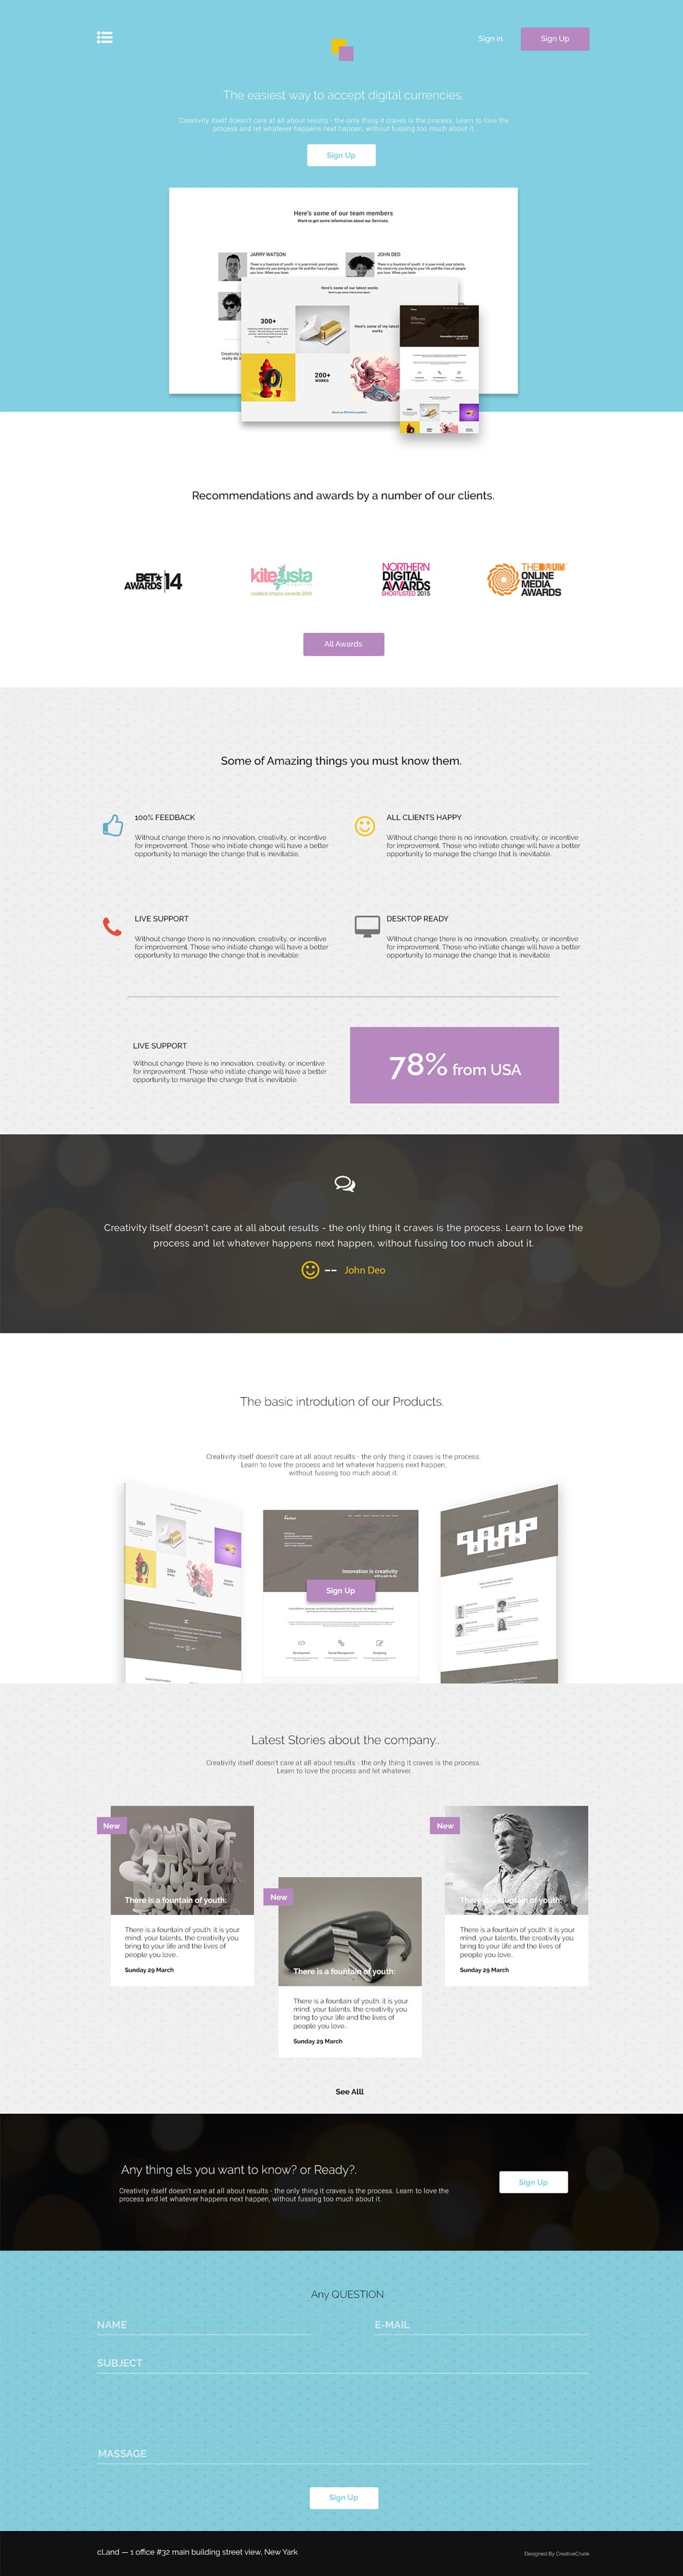 CLand – Landing Page Template PSD